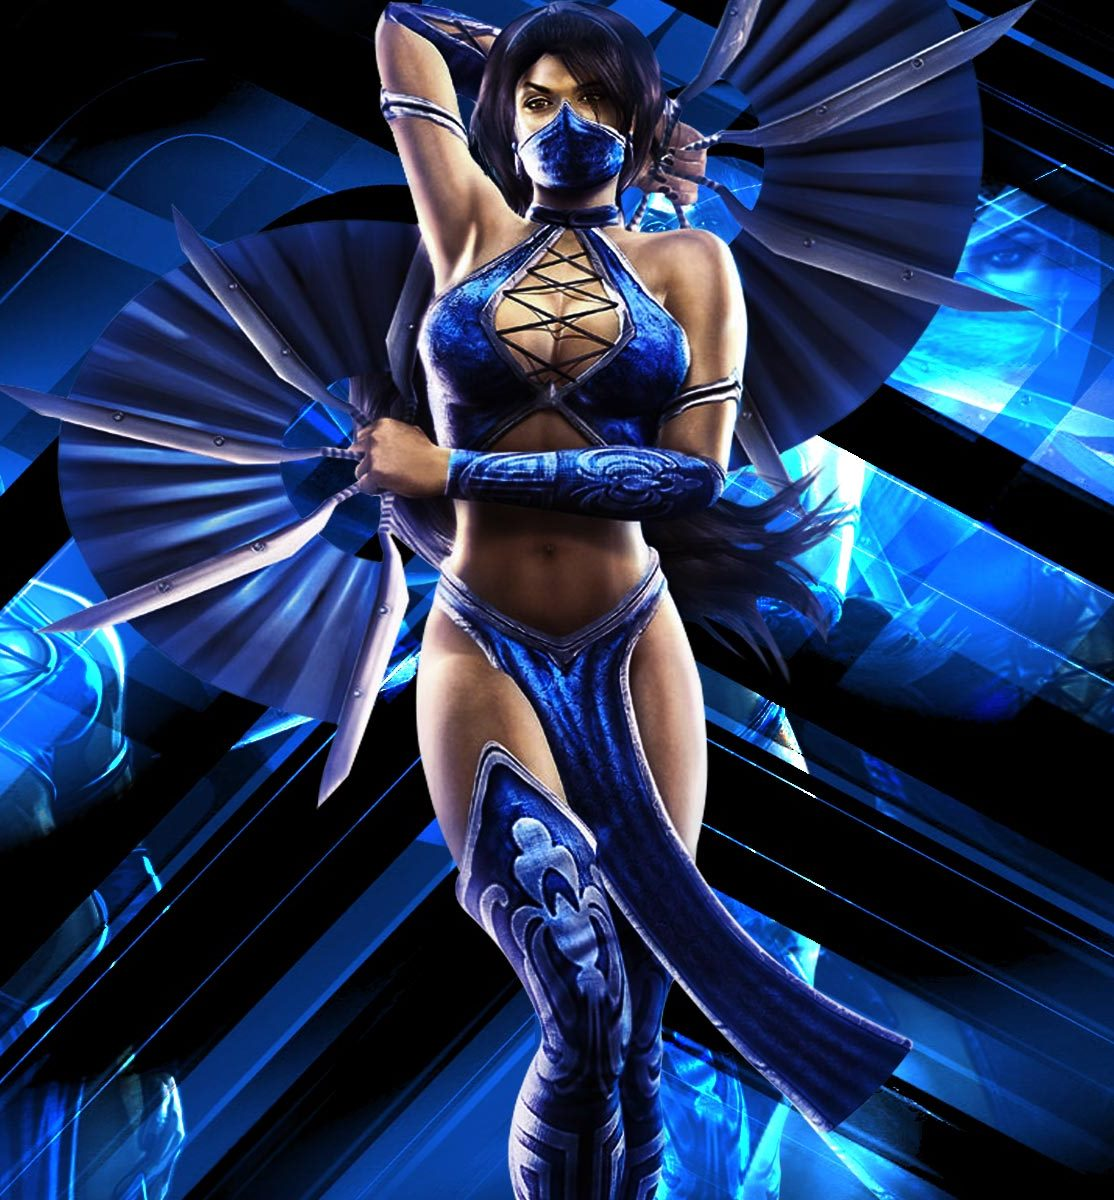 Here are a few images of kitana from the game and promotional graphics